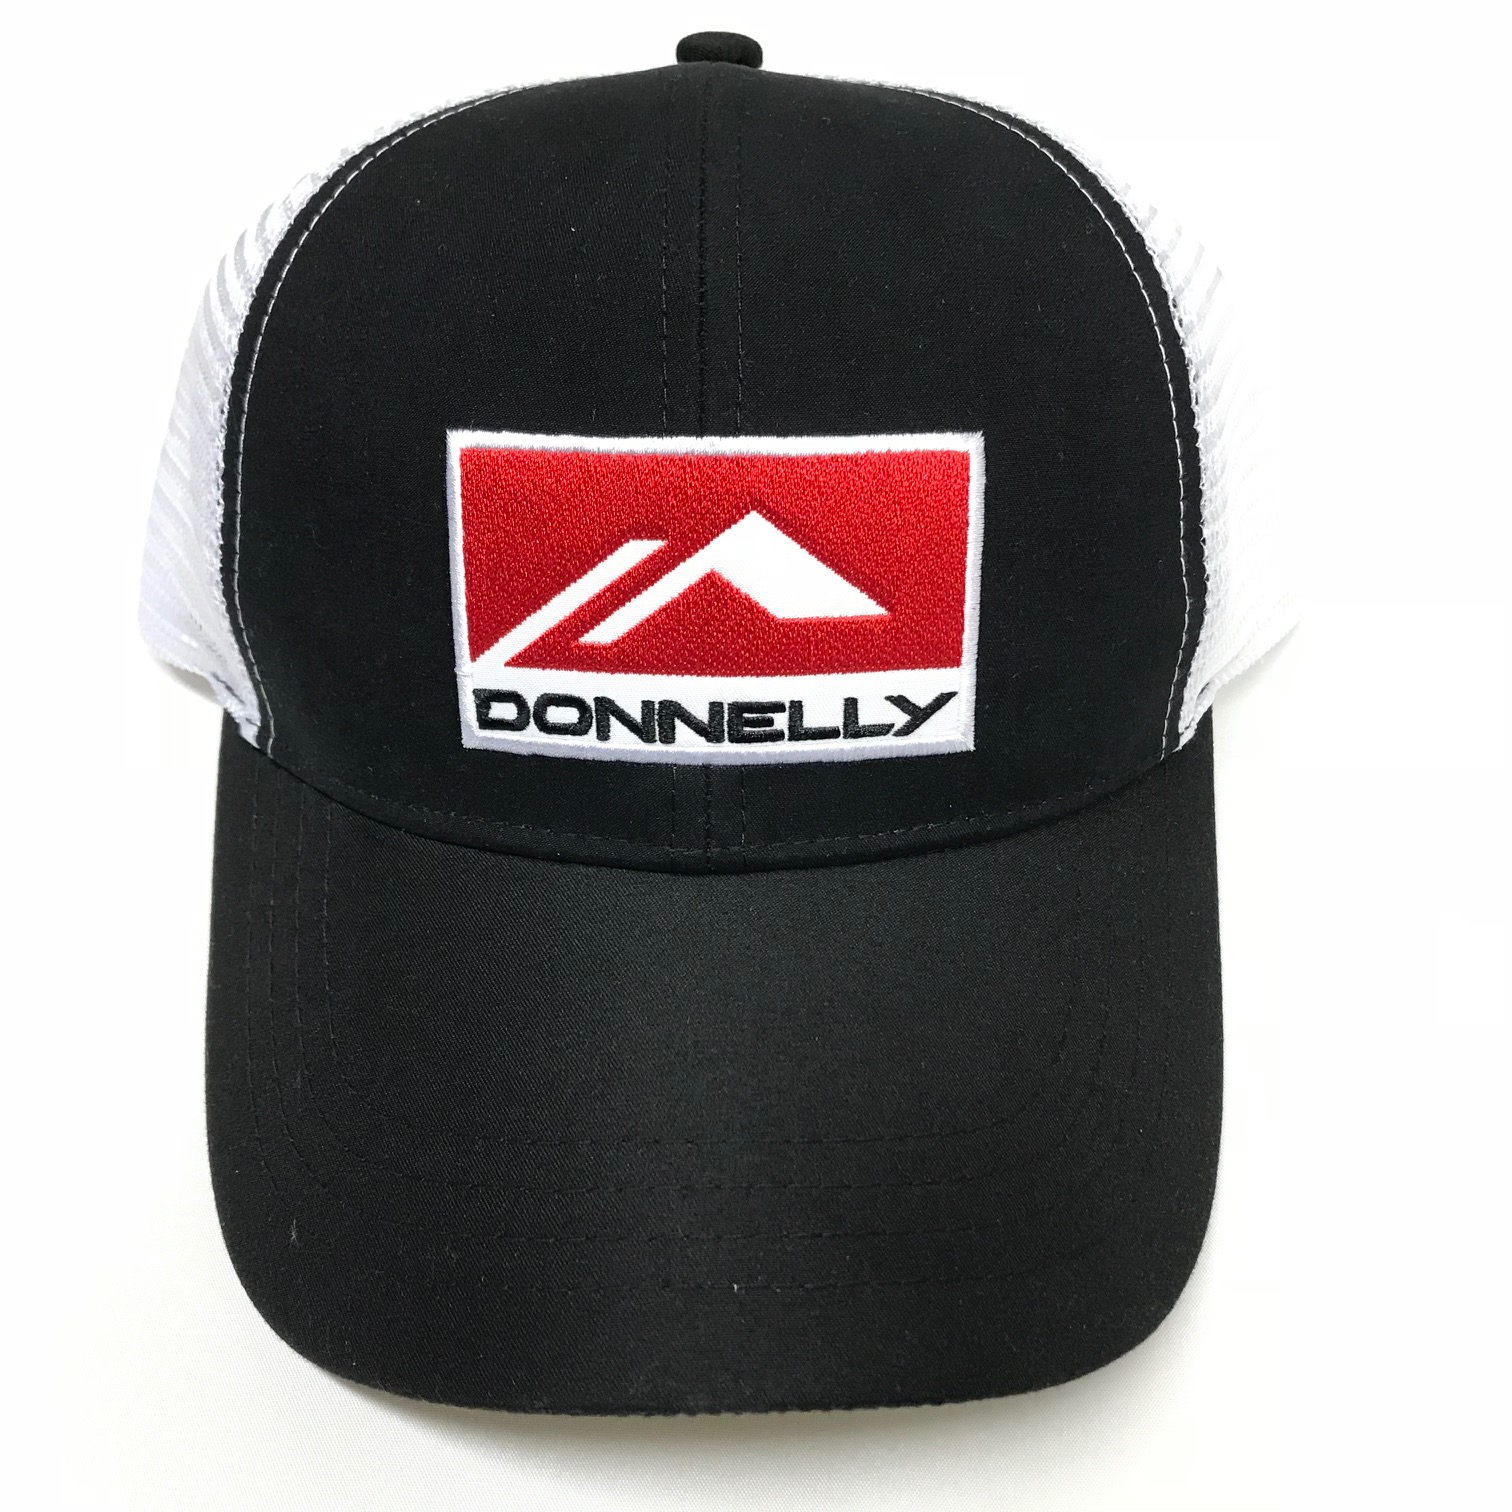 Donnelly Trucker Hat, Curved Bill, Black THUMBNAIL